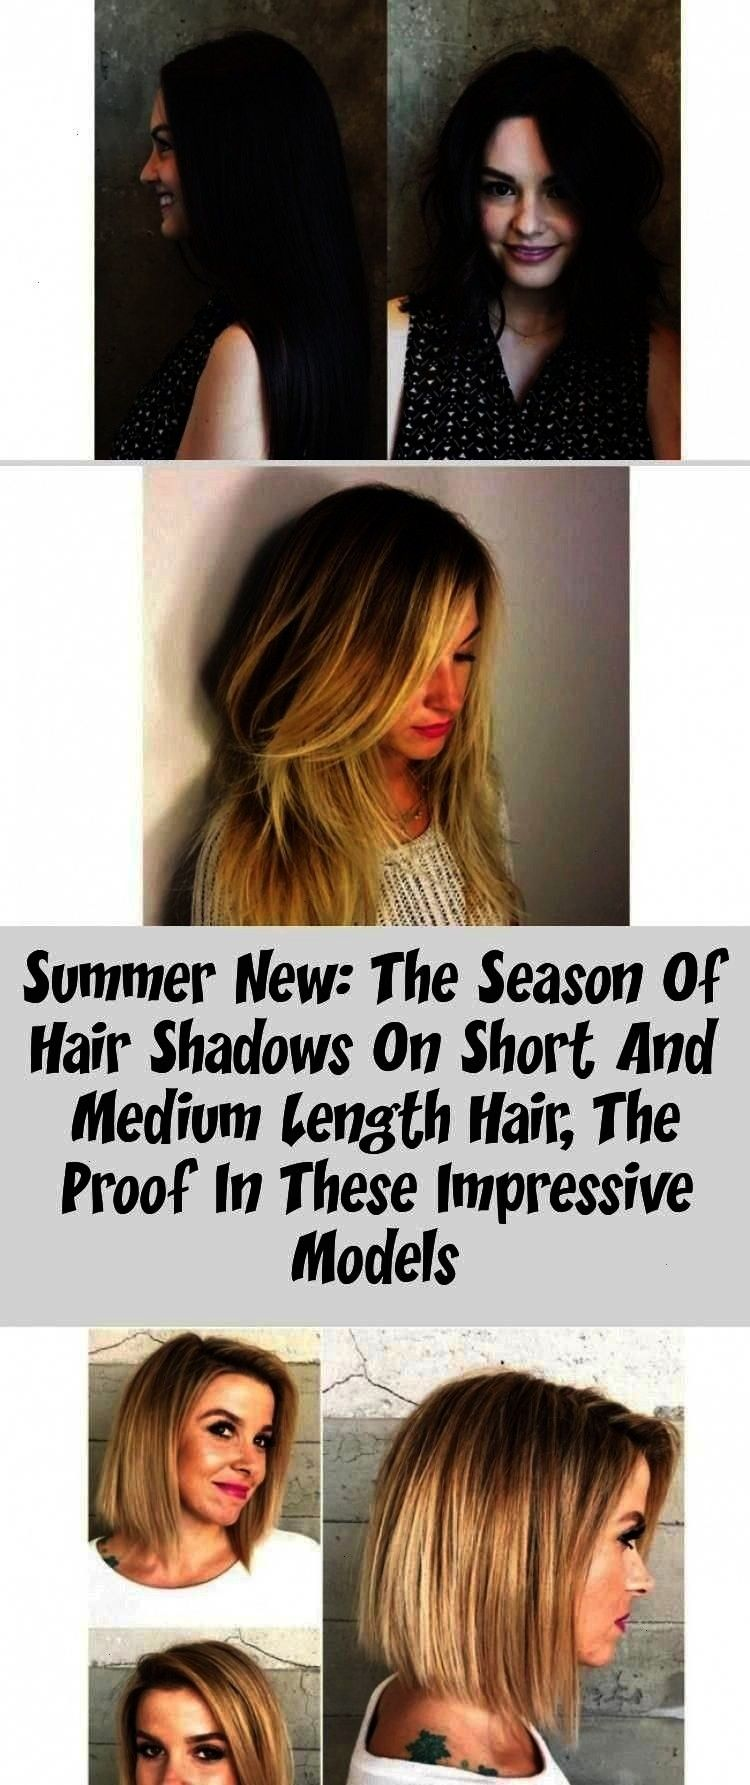 of Hair Shadows on Short and Medium Length Hair, the proof in These Impressive Models Summer New: T